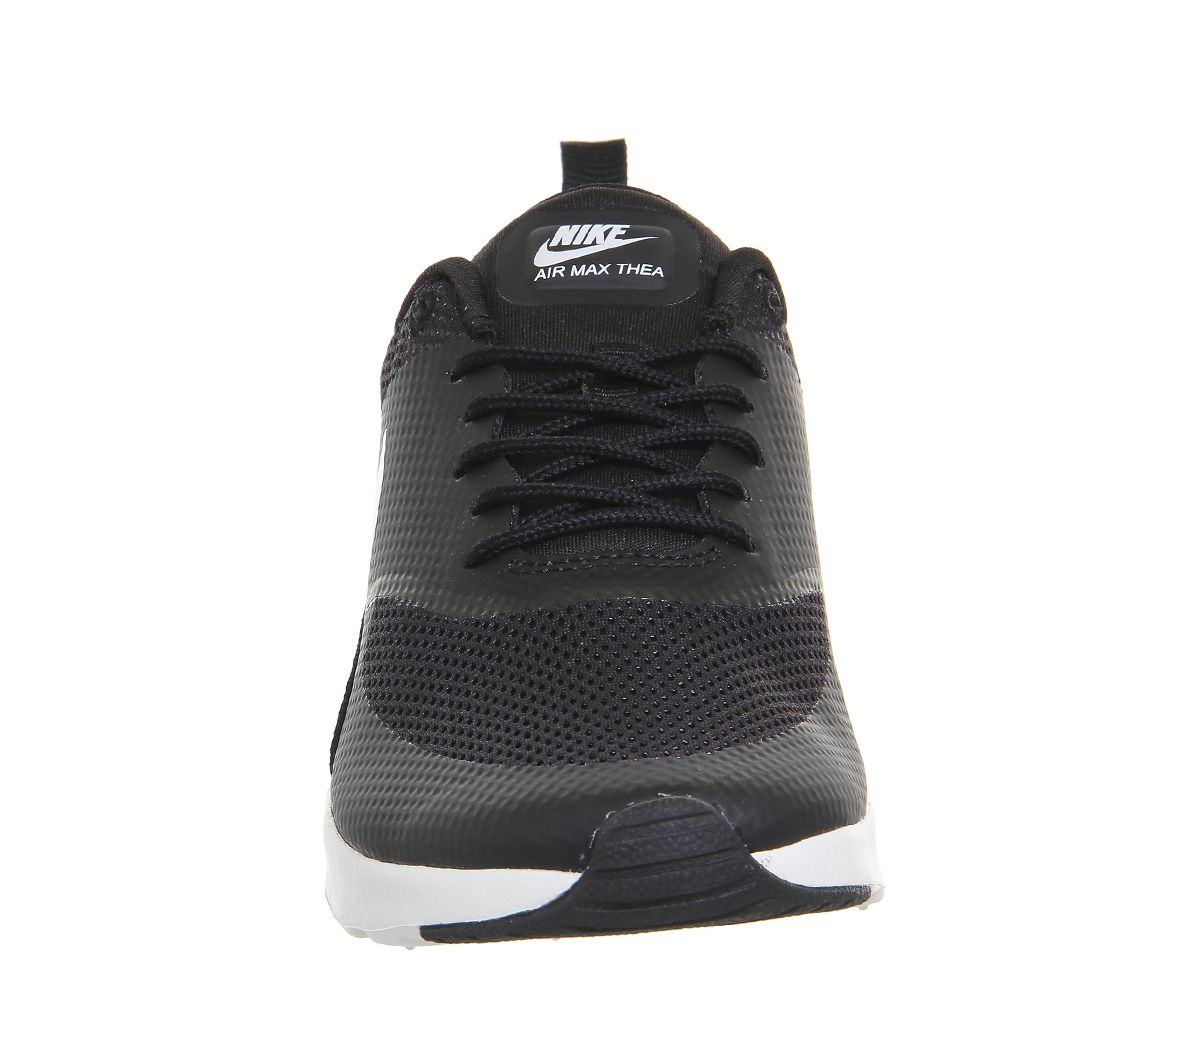 pretty nice 3f16c 8f0cb Air Max Thea. Double tap to zoom into the image